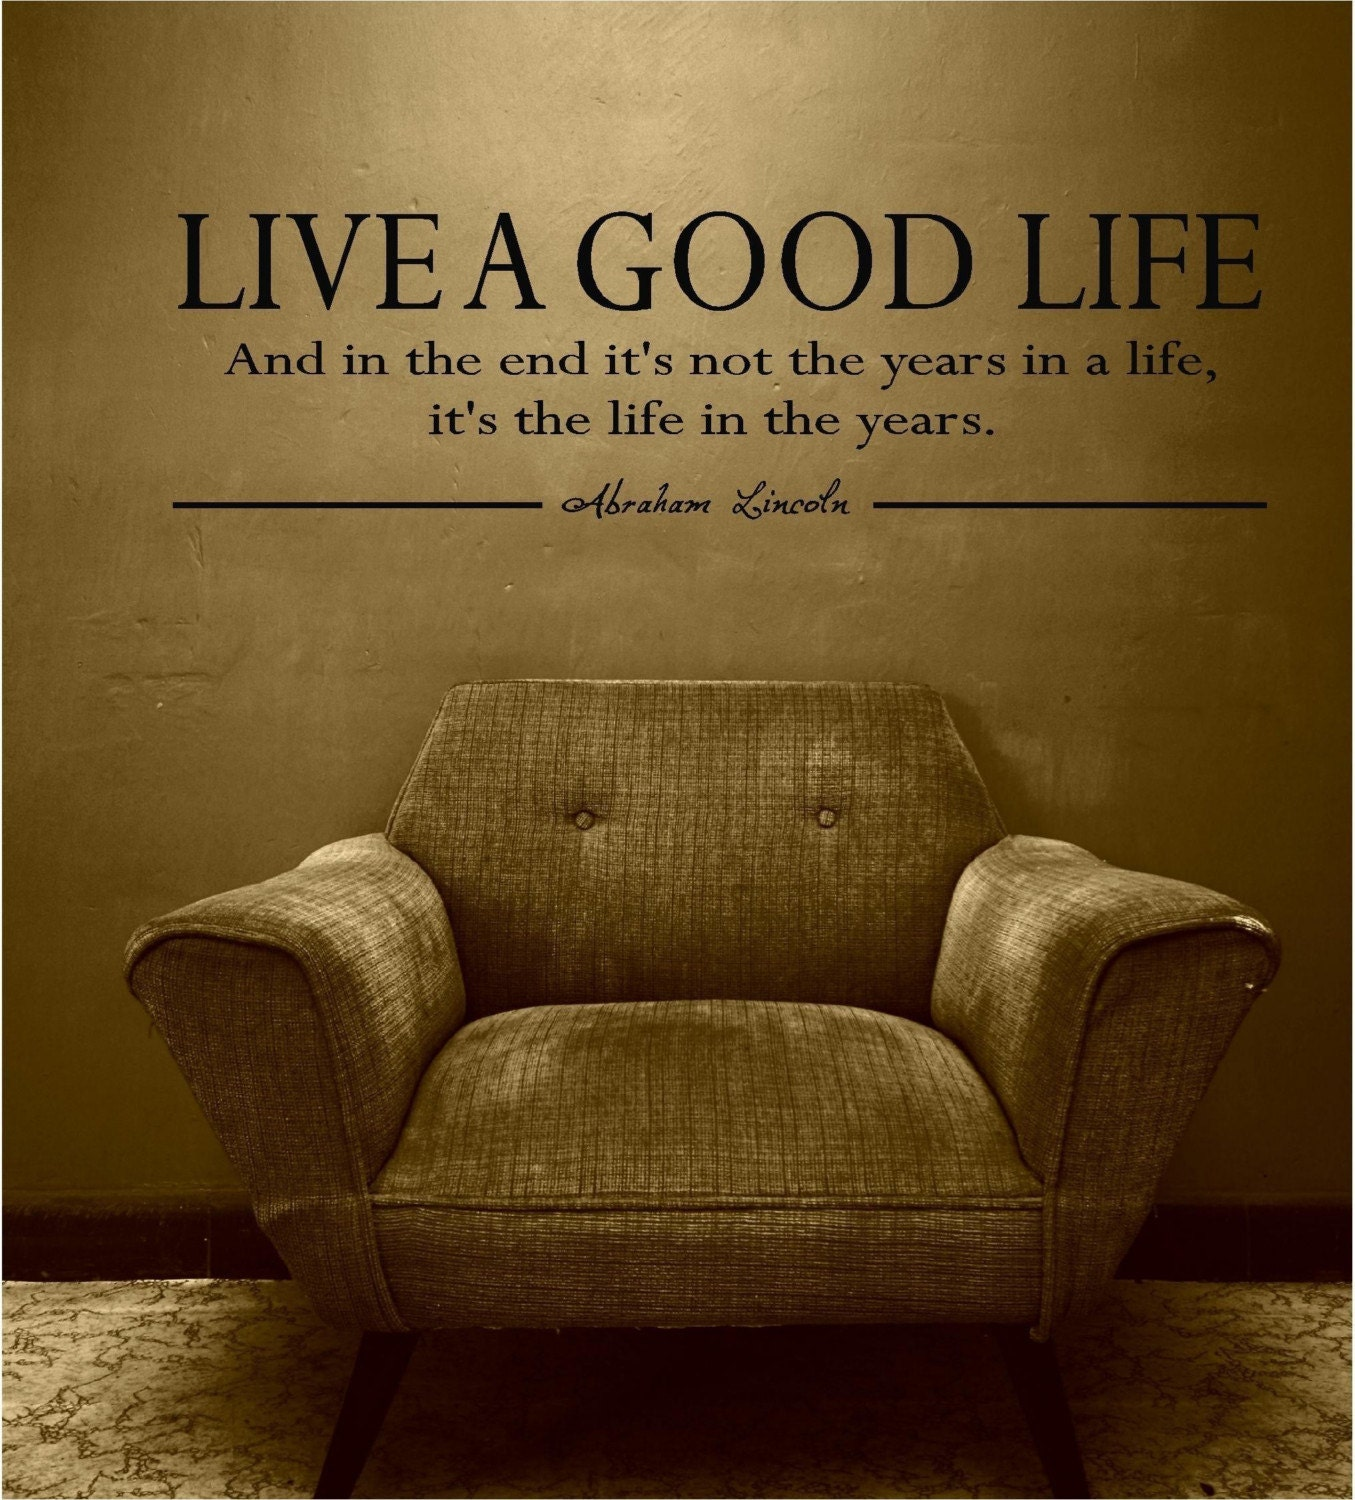 Some Good Quotes On Life: A Good Life